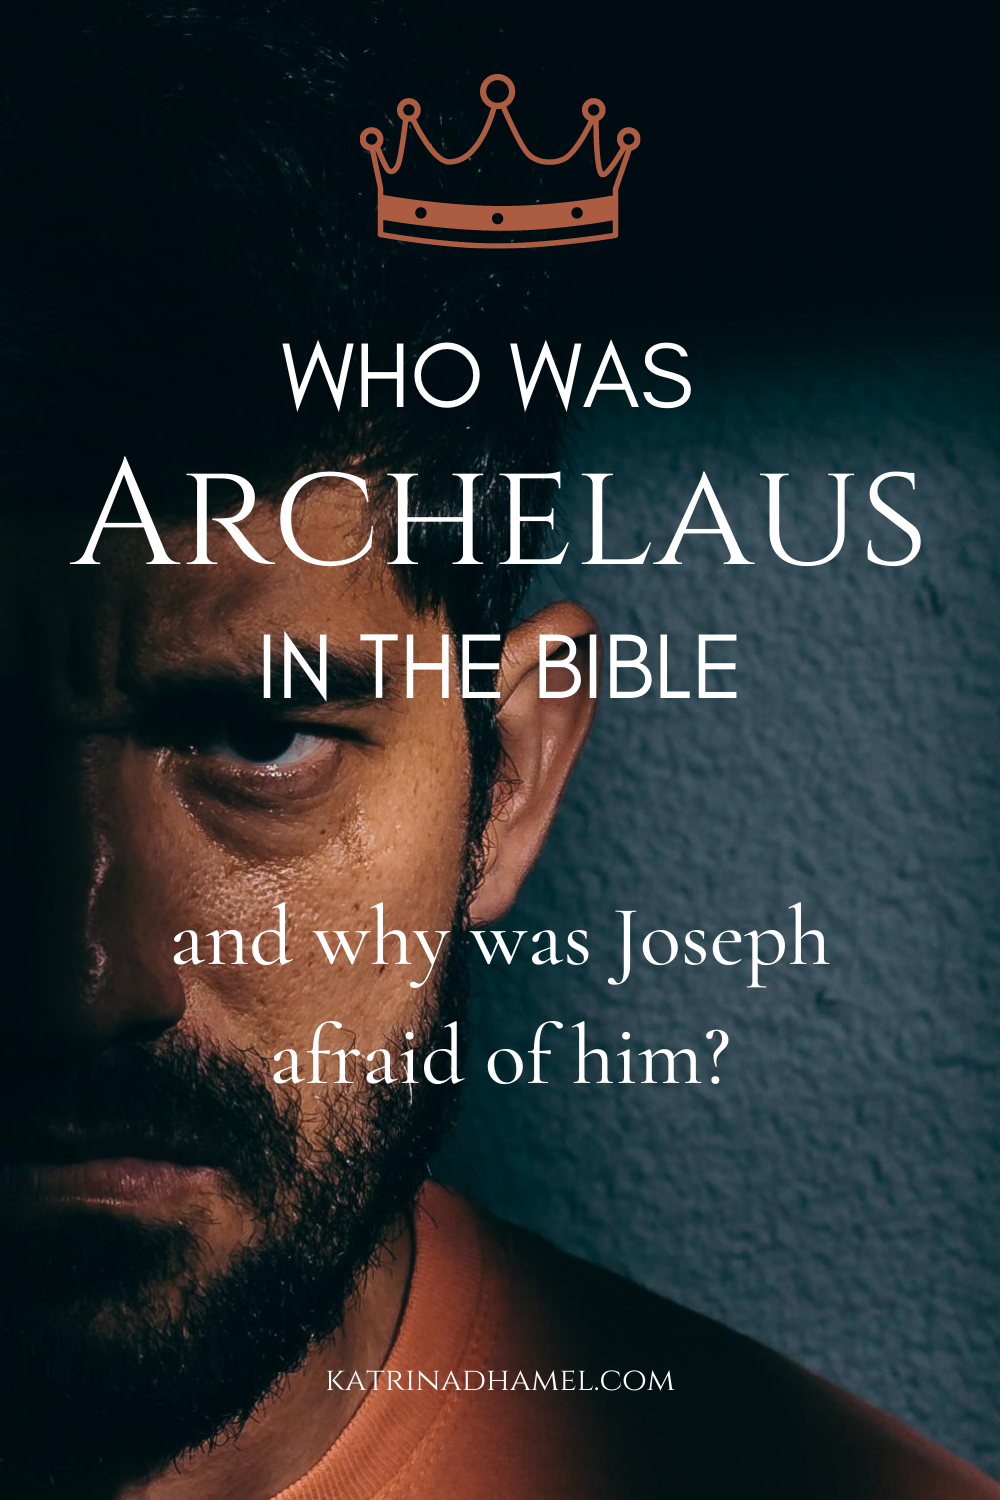 Who was Archelaus in the Bible and why was Joseph afraid of him?